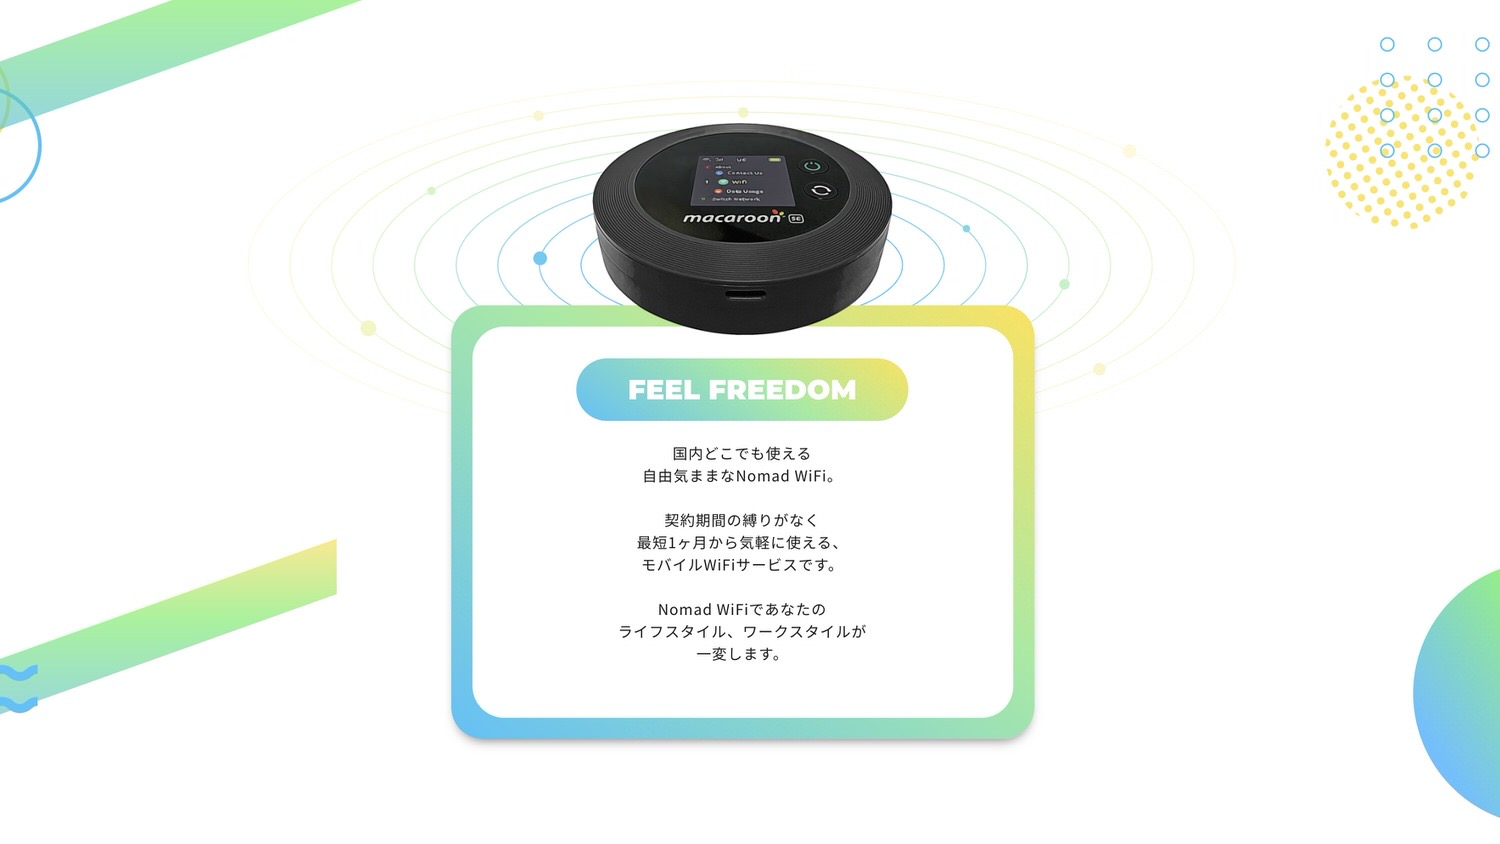 Nomad wifi release 05 04